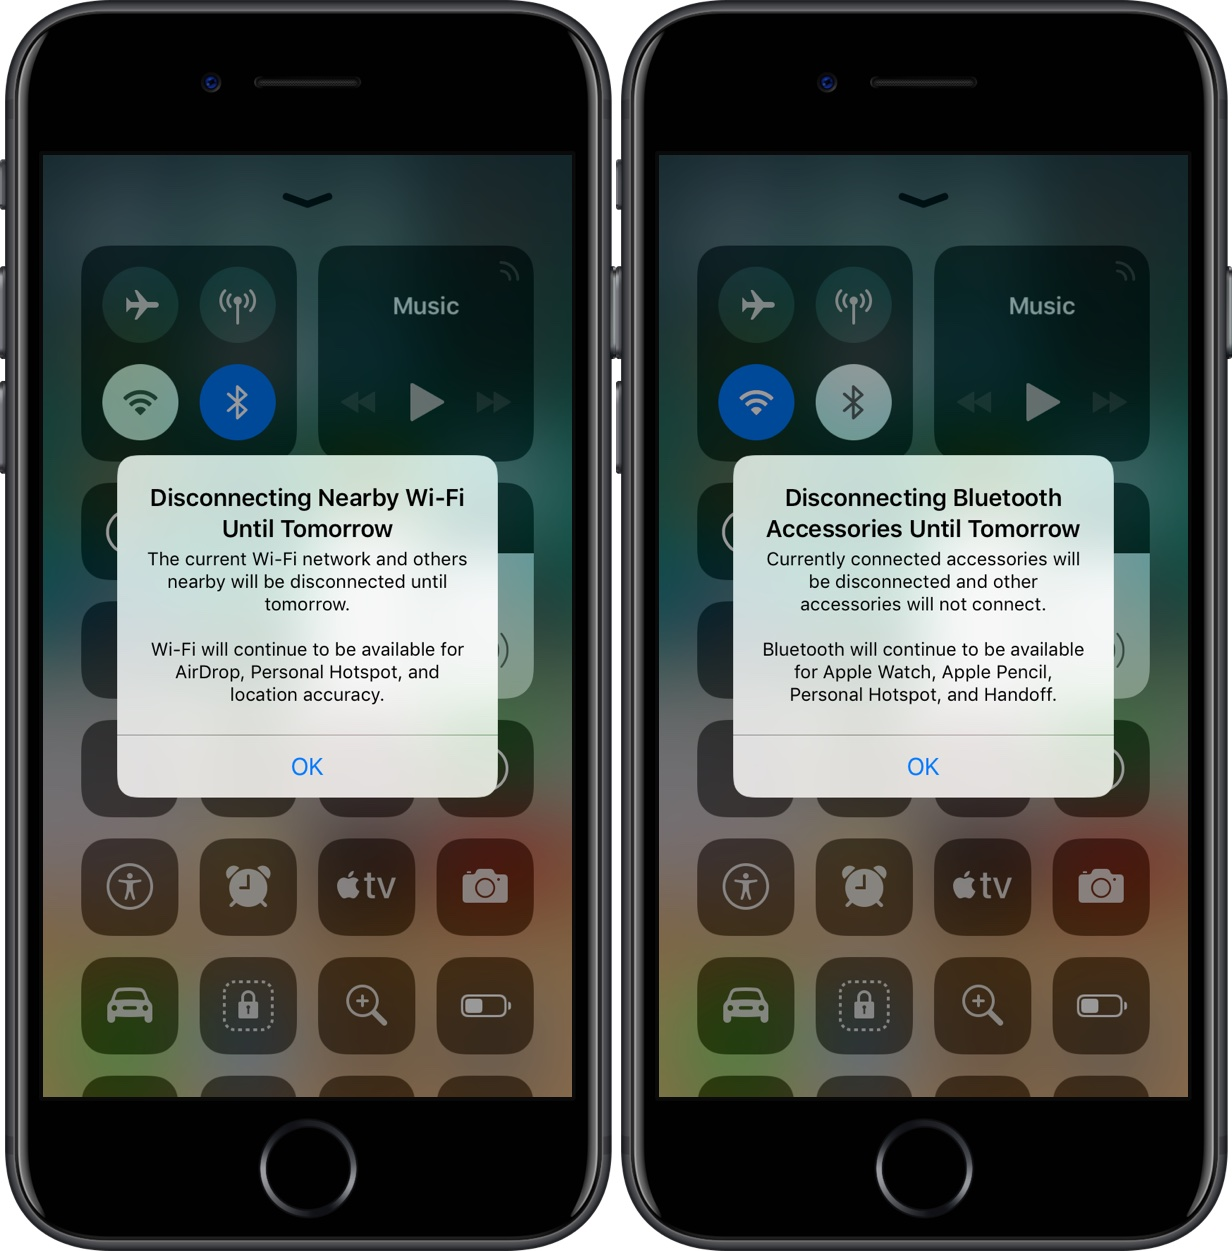 iOS 11 2 makes it clearer how Control Center's Wi-Fi and Bluetooth